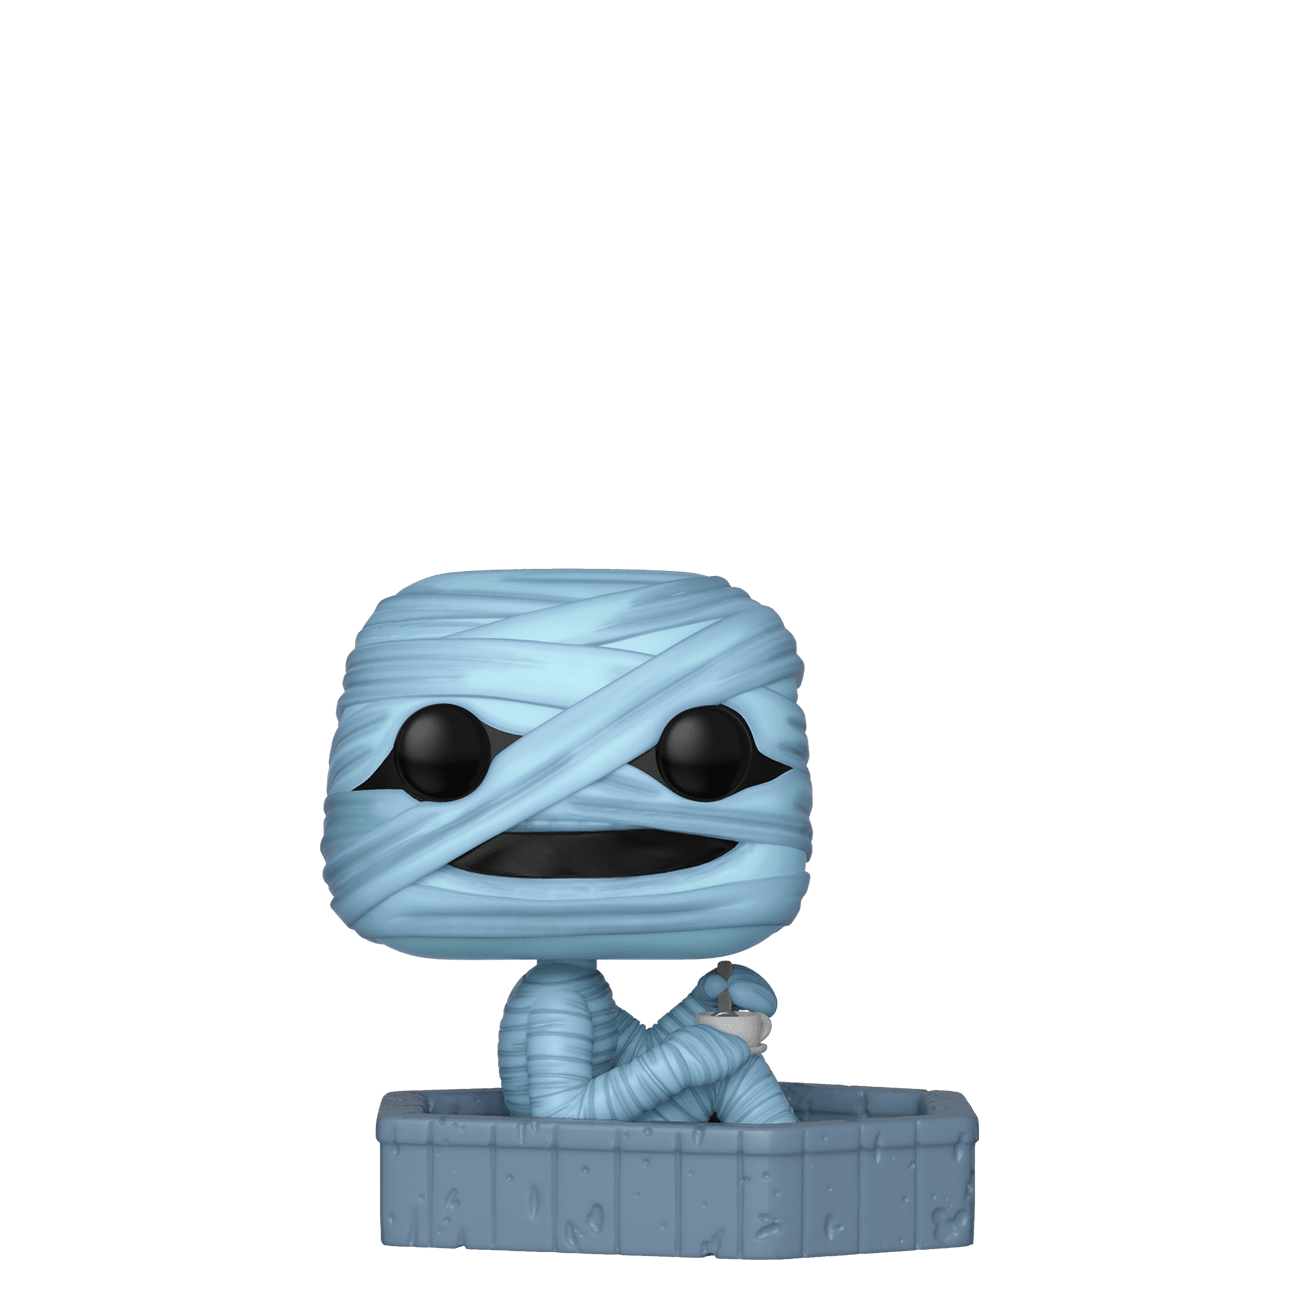 42149_HauntedMansion_Mummy_POP_GLAM_WEB.png